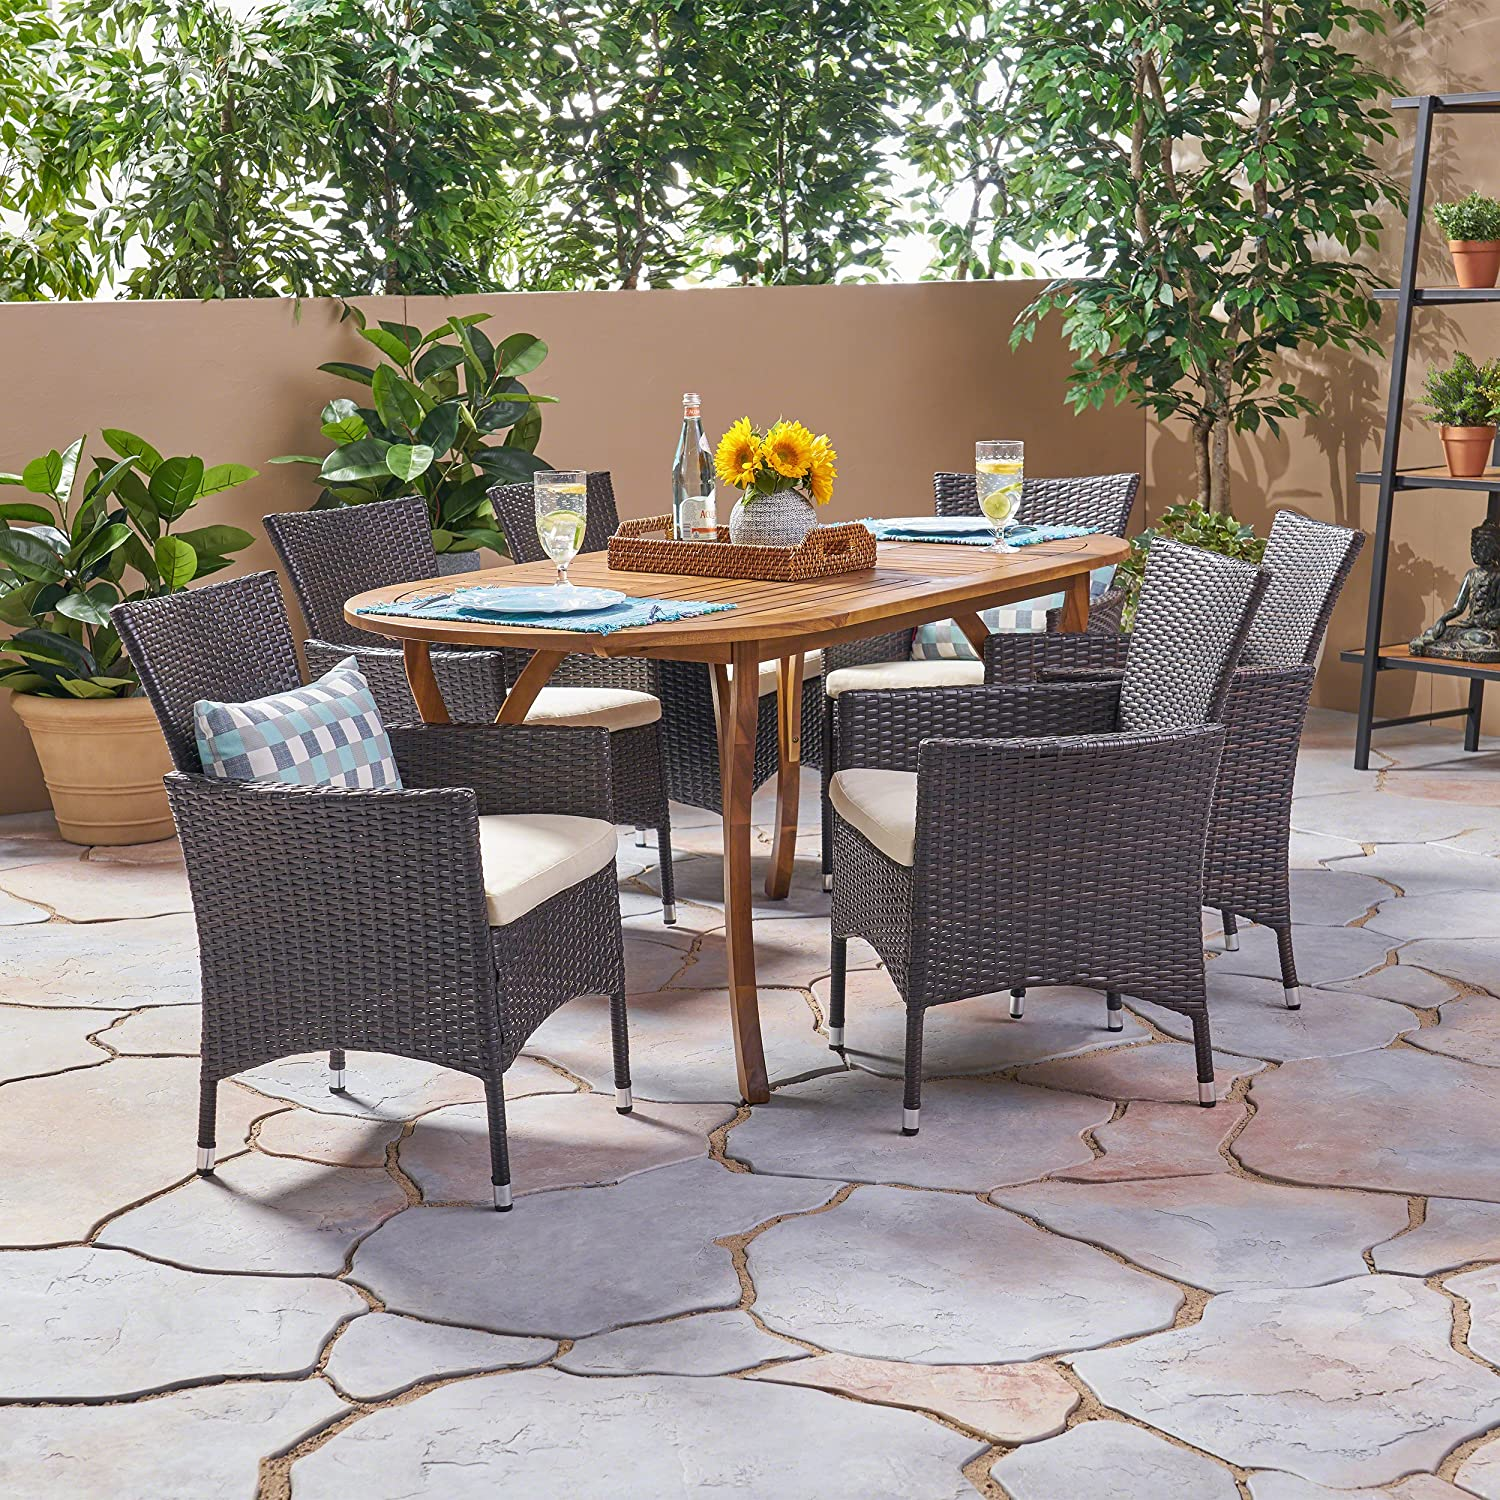 Christopher Knight Home Edna Outdoor 7 Piece Acacia Wood and Wicker Dining Set, Teak with Multi Brown Chairs